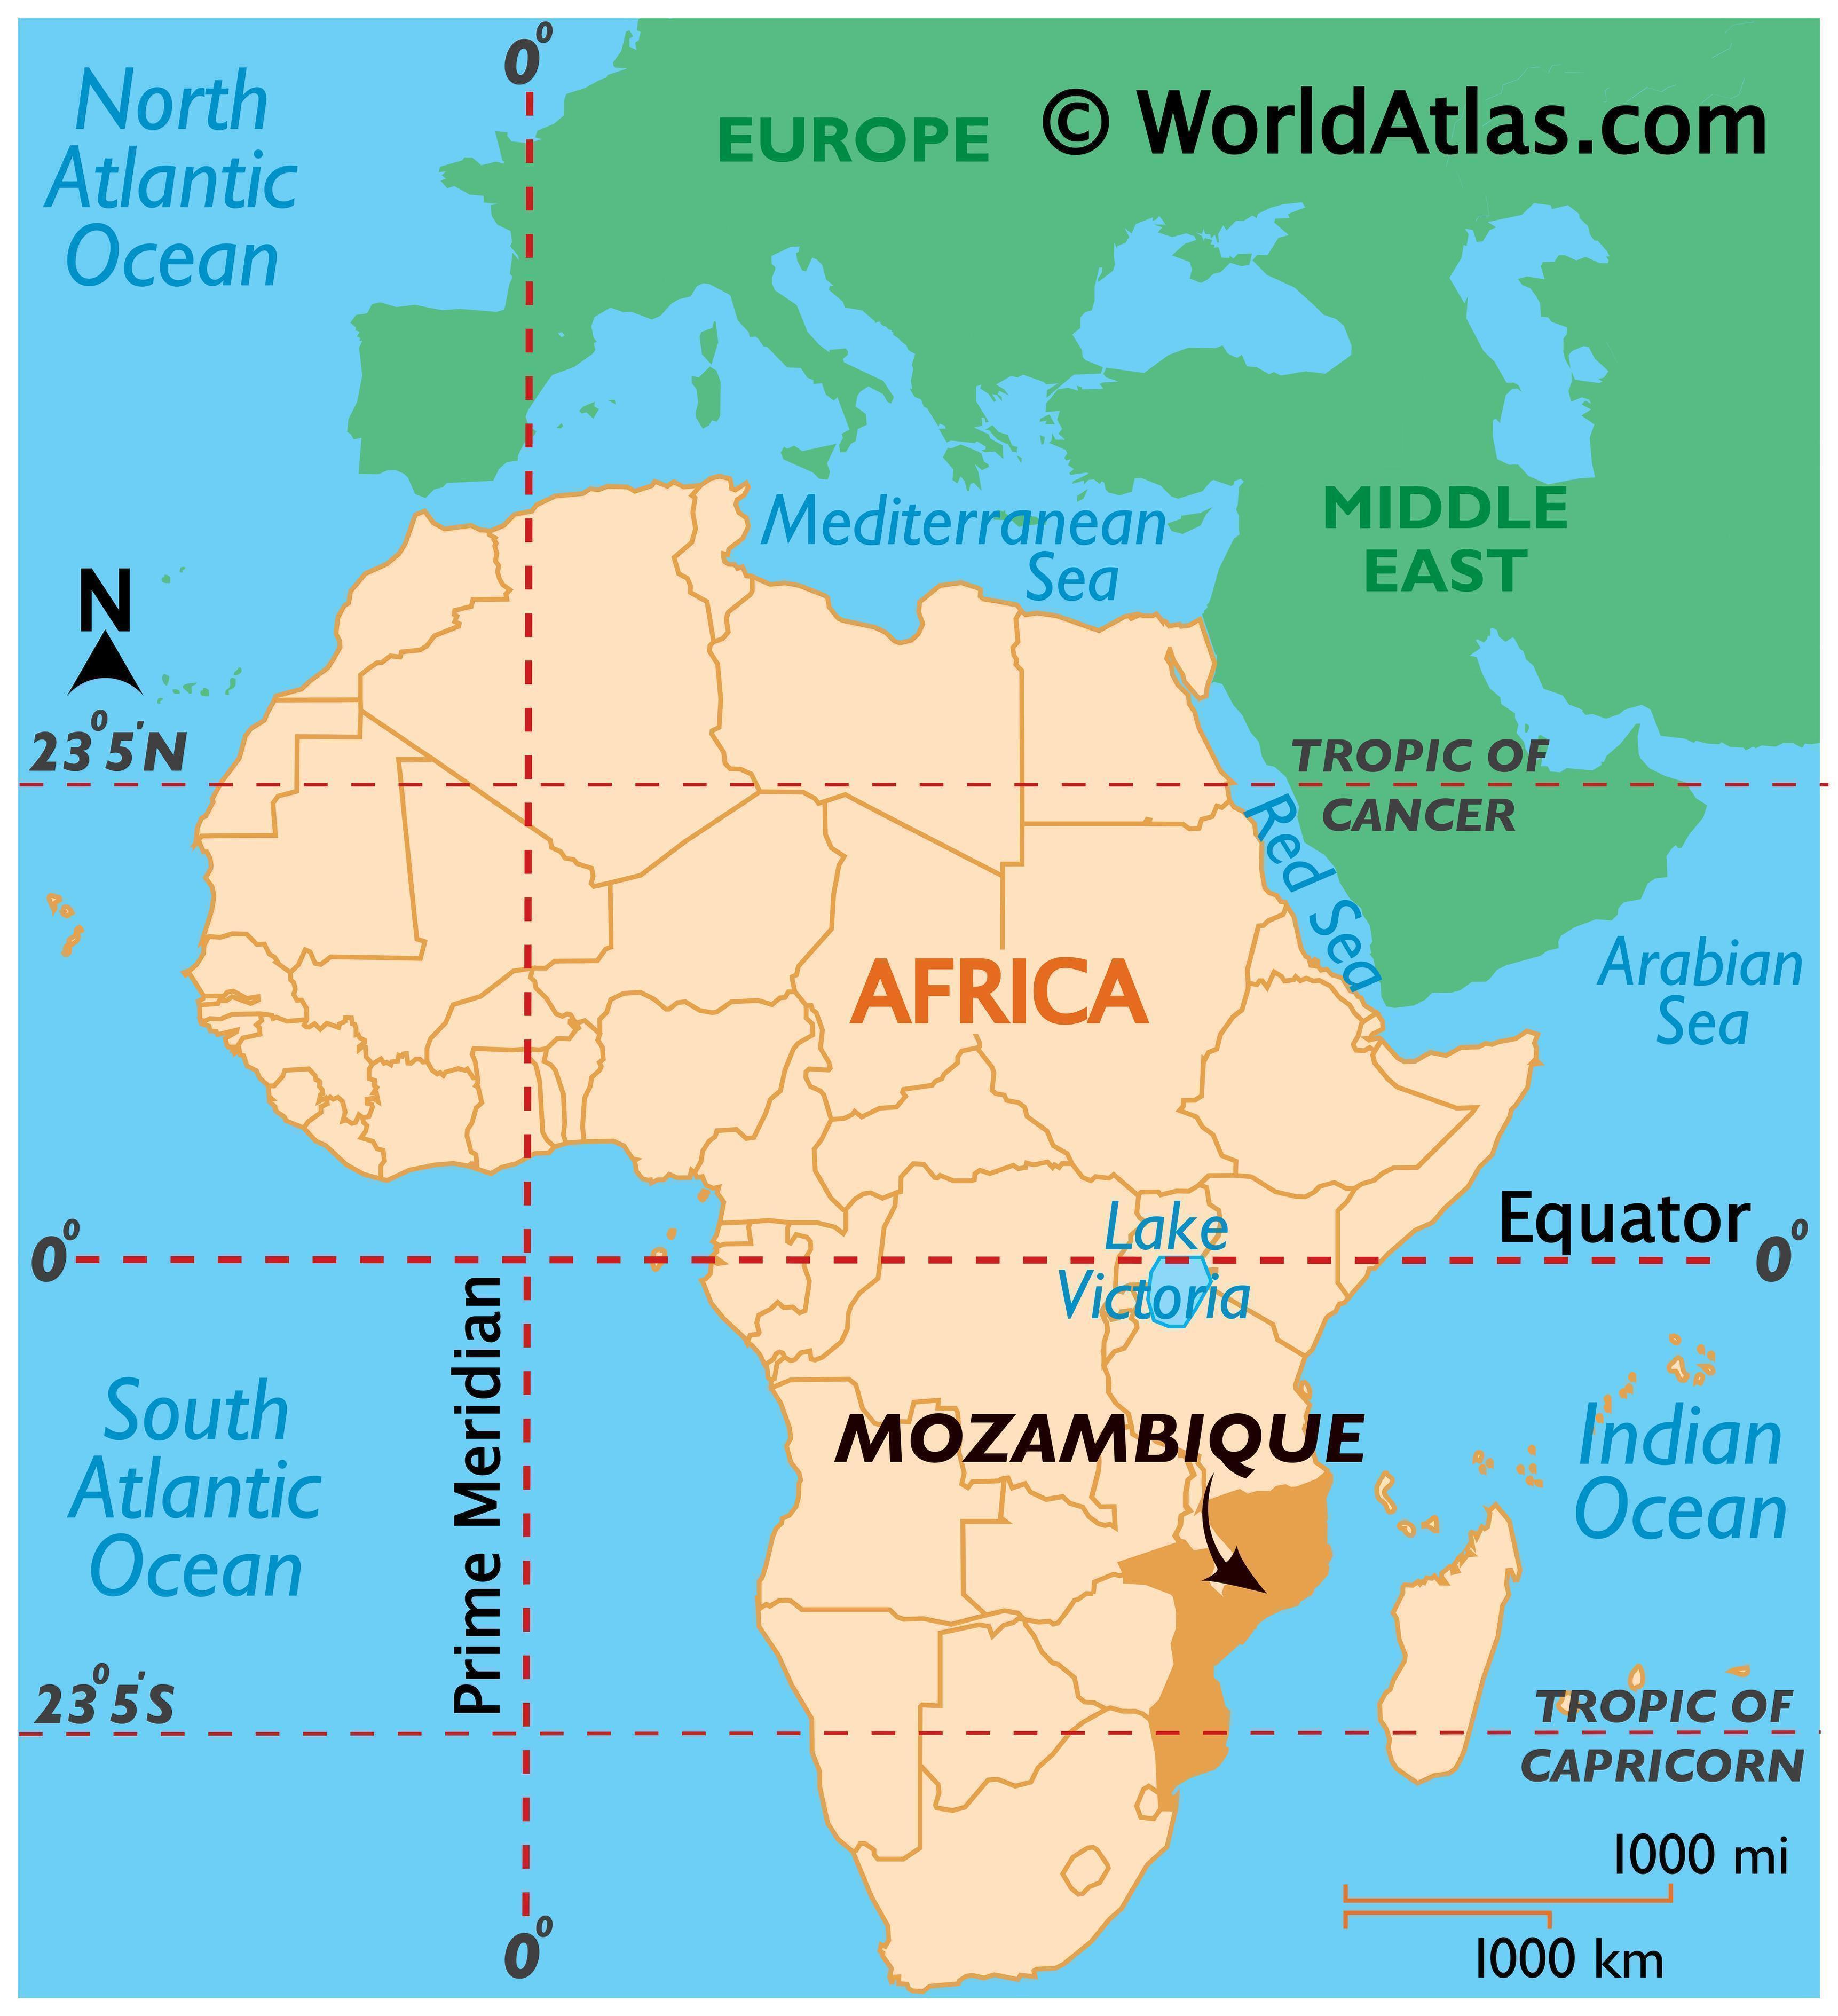 Map showing location of Mozambique in the world.